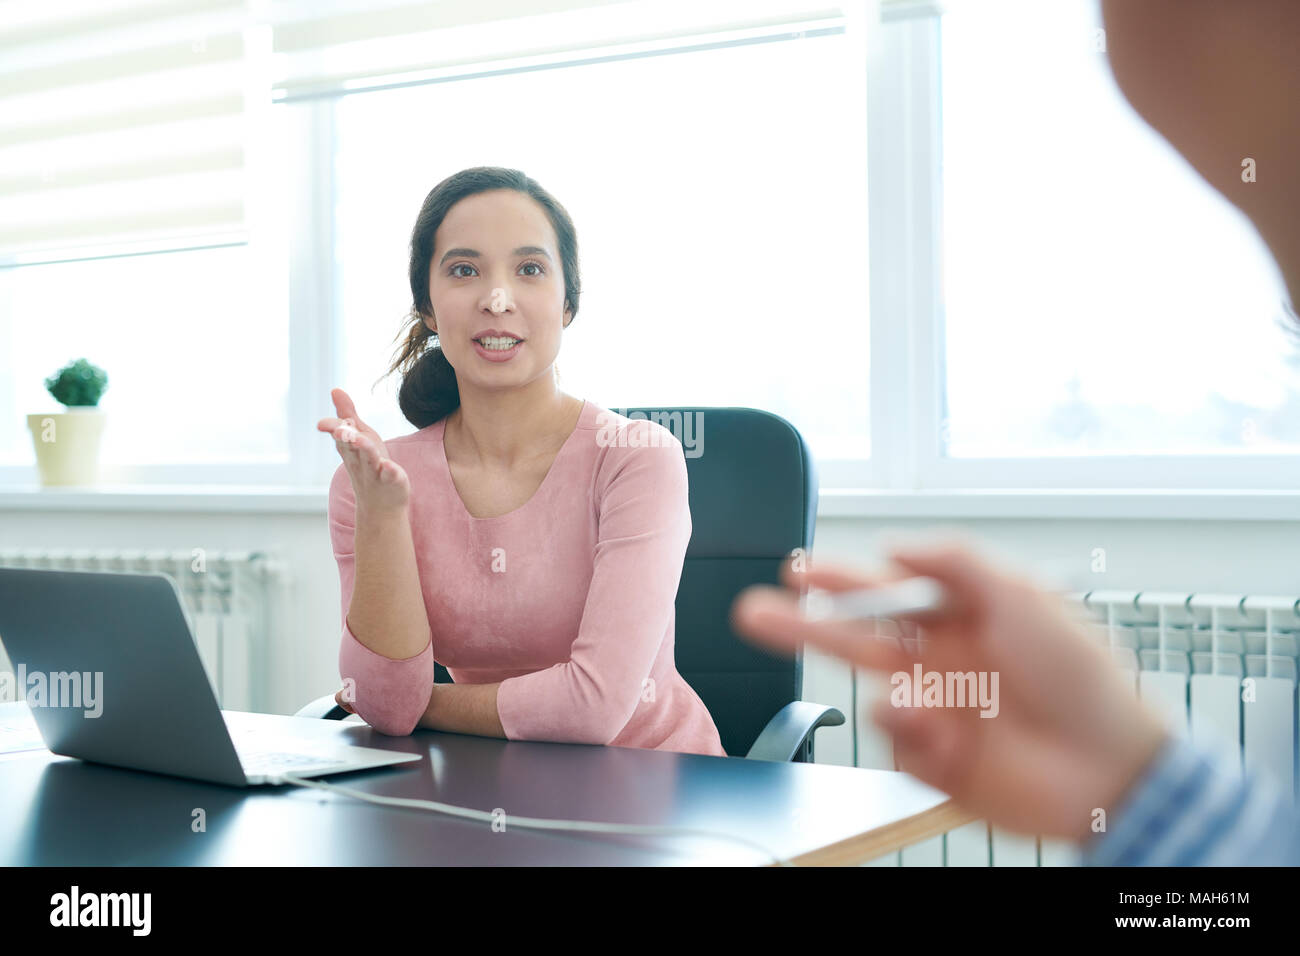 Enthusiastic business lady discussing agenda with colleague - Stock Image